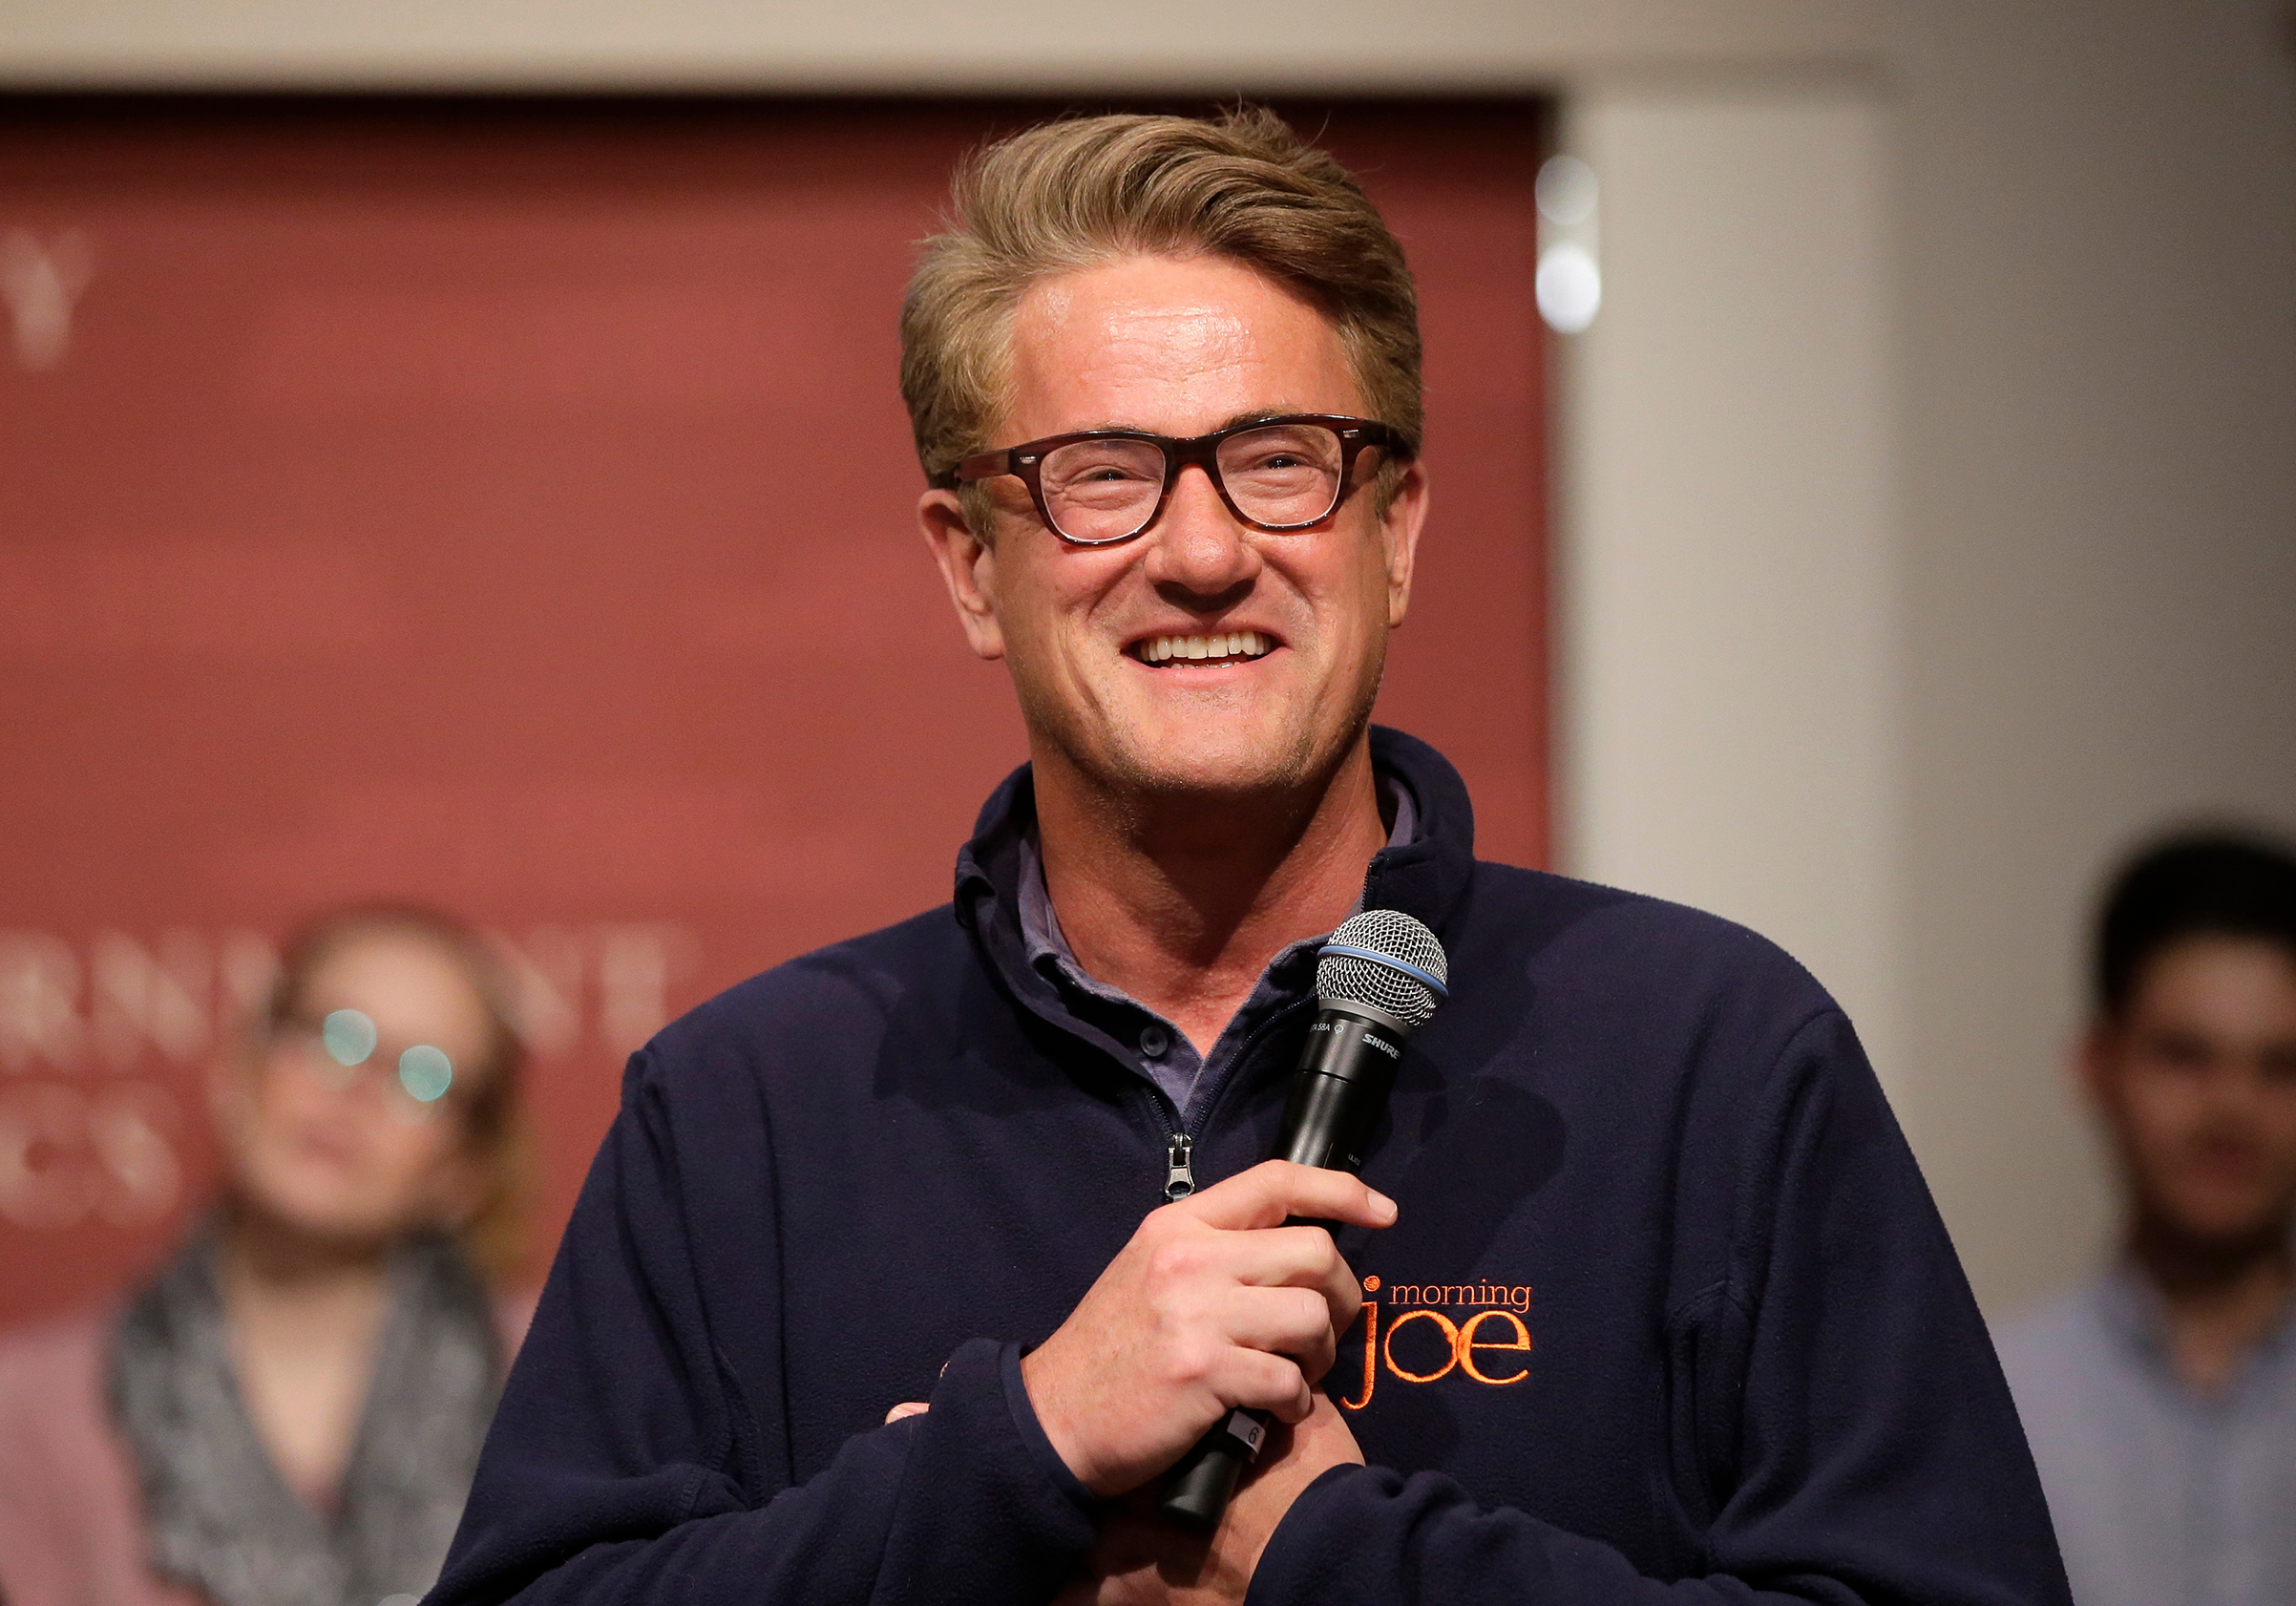 MSNBC television anchor Joe Scarborough, co-hosts of the show  Morning Joe,  takes questions from an audience, at a forum on Oct. 11, 2017.